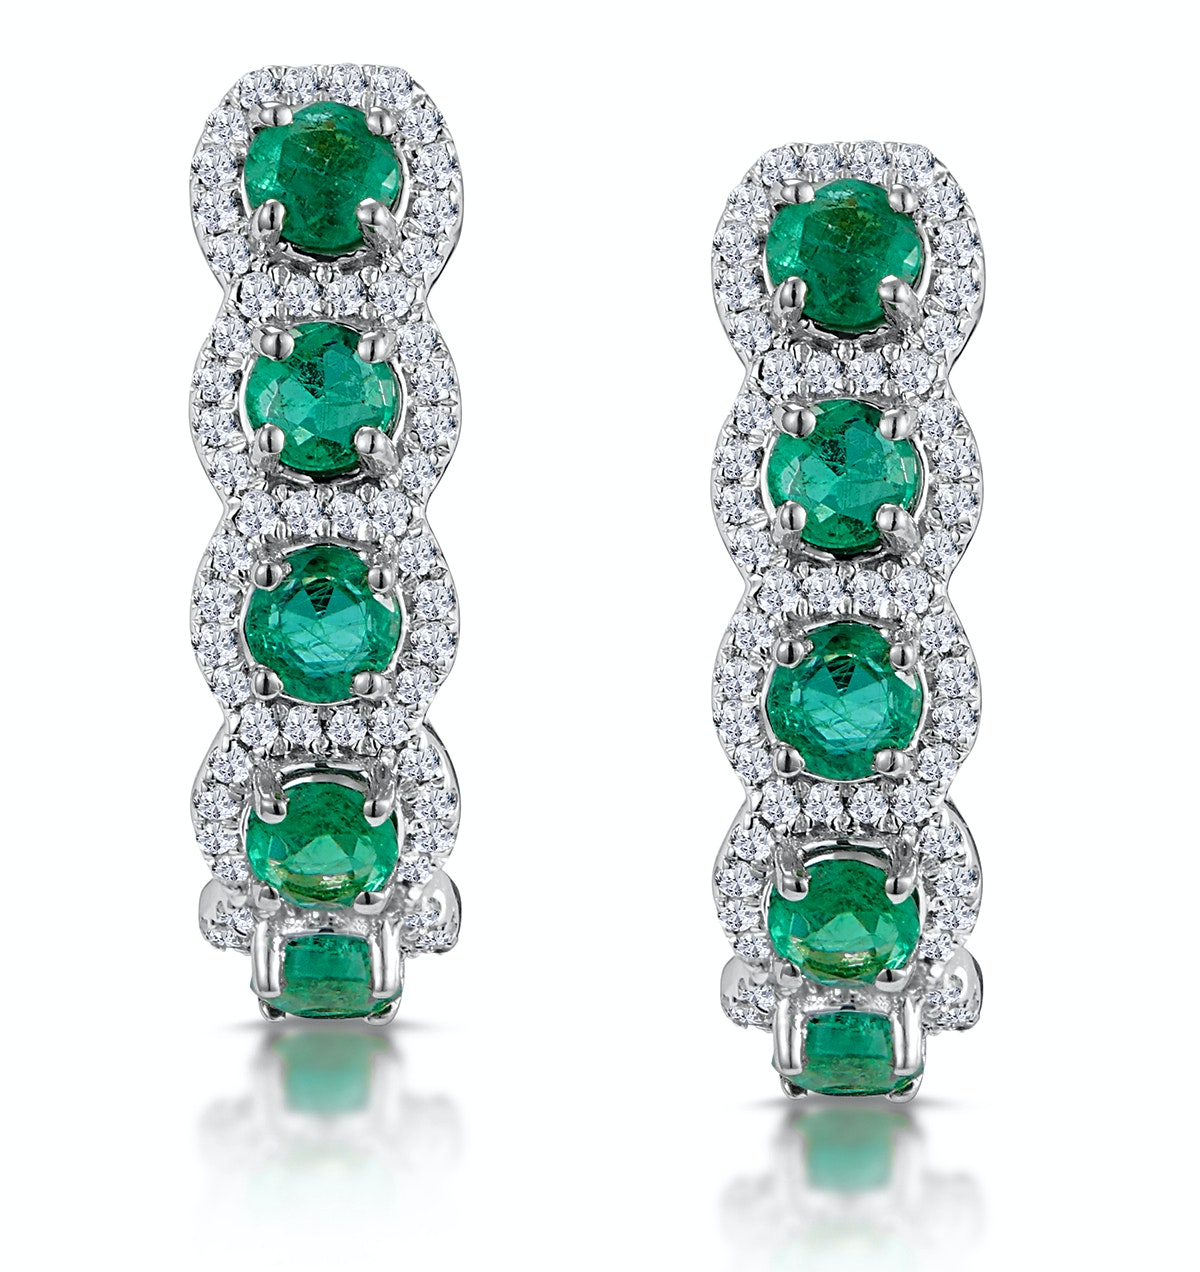 1.20ct Emerald and Diamond Halo Asteria Earrings in 18K White Gold